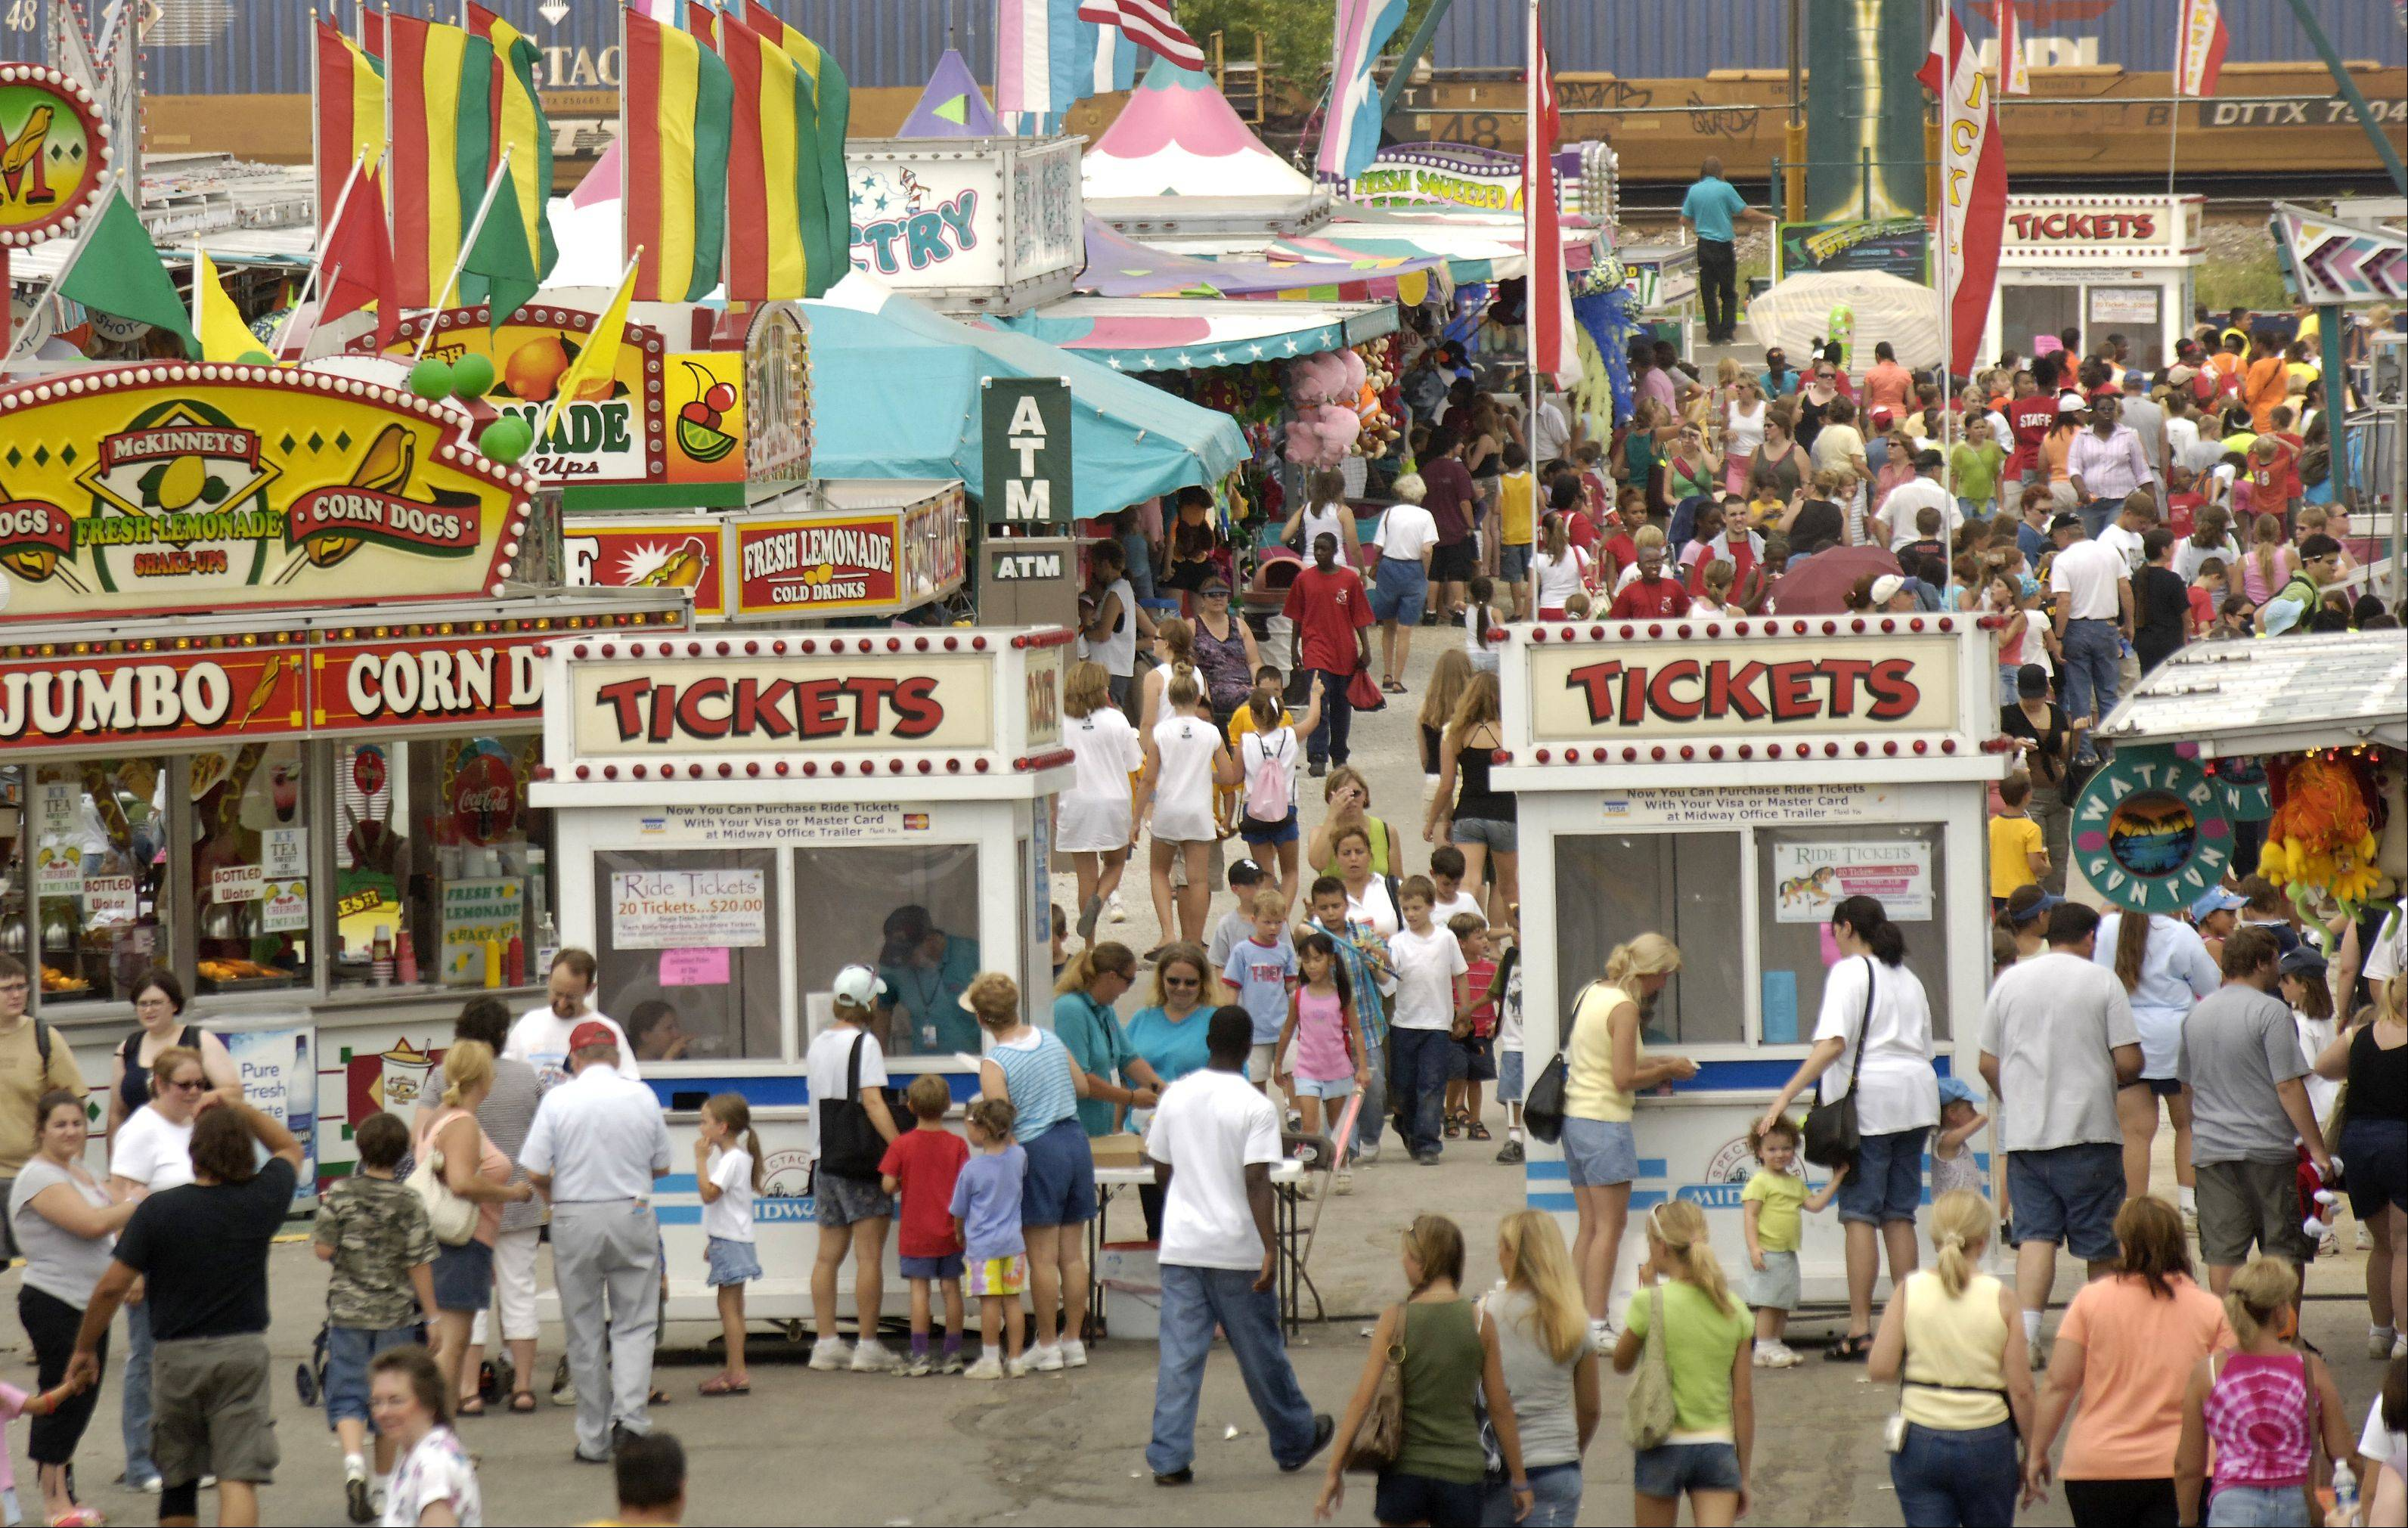 Report: Changes needed to save DuPage County Fair